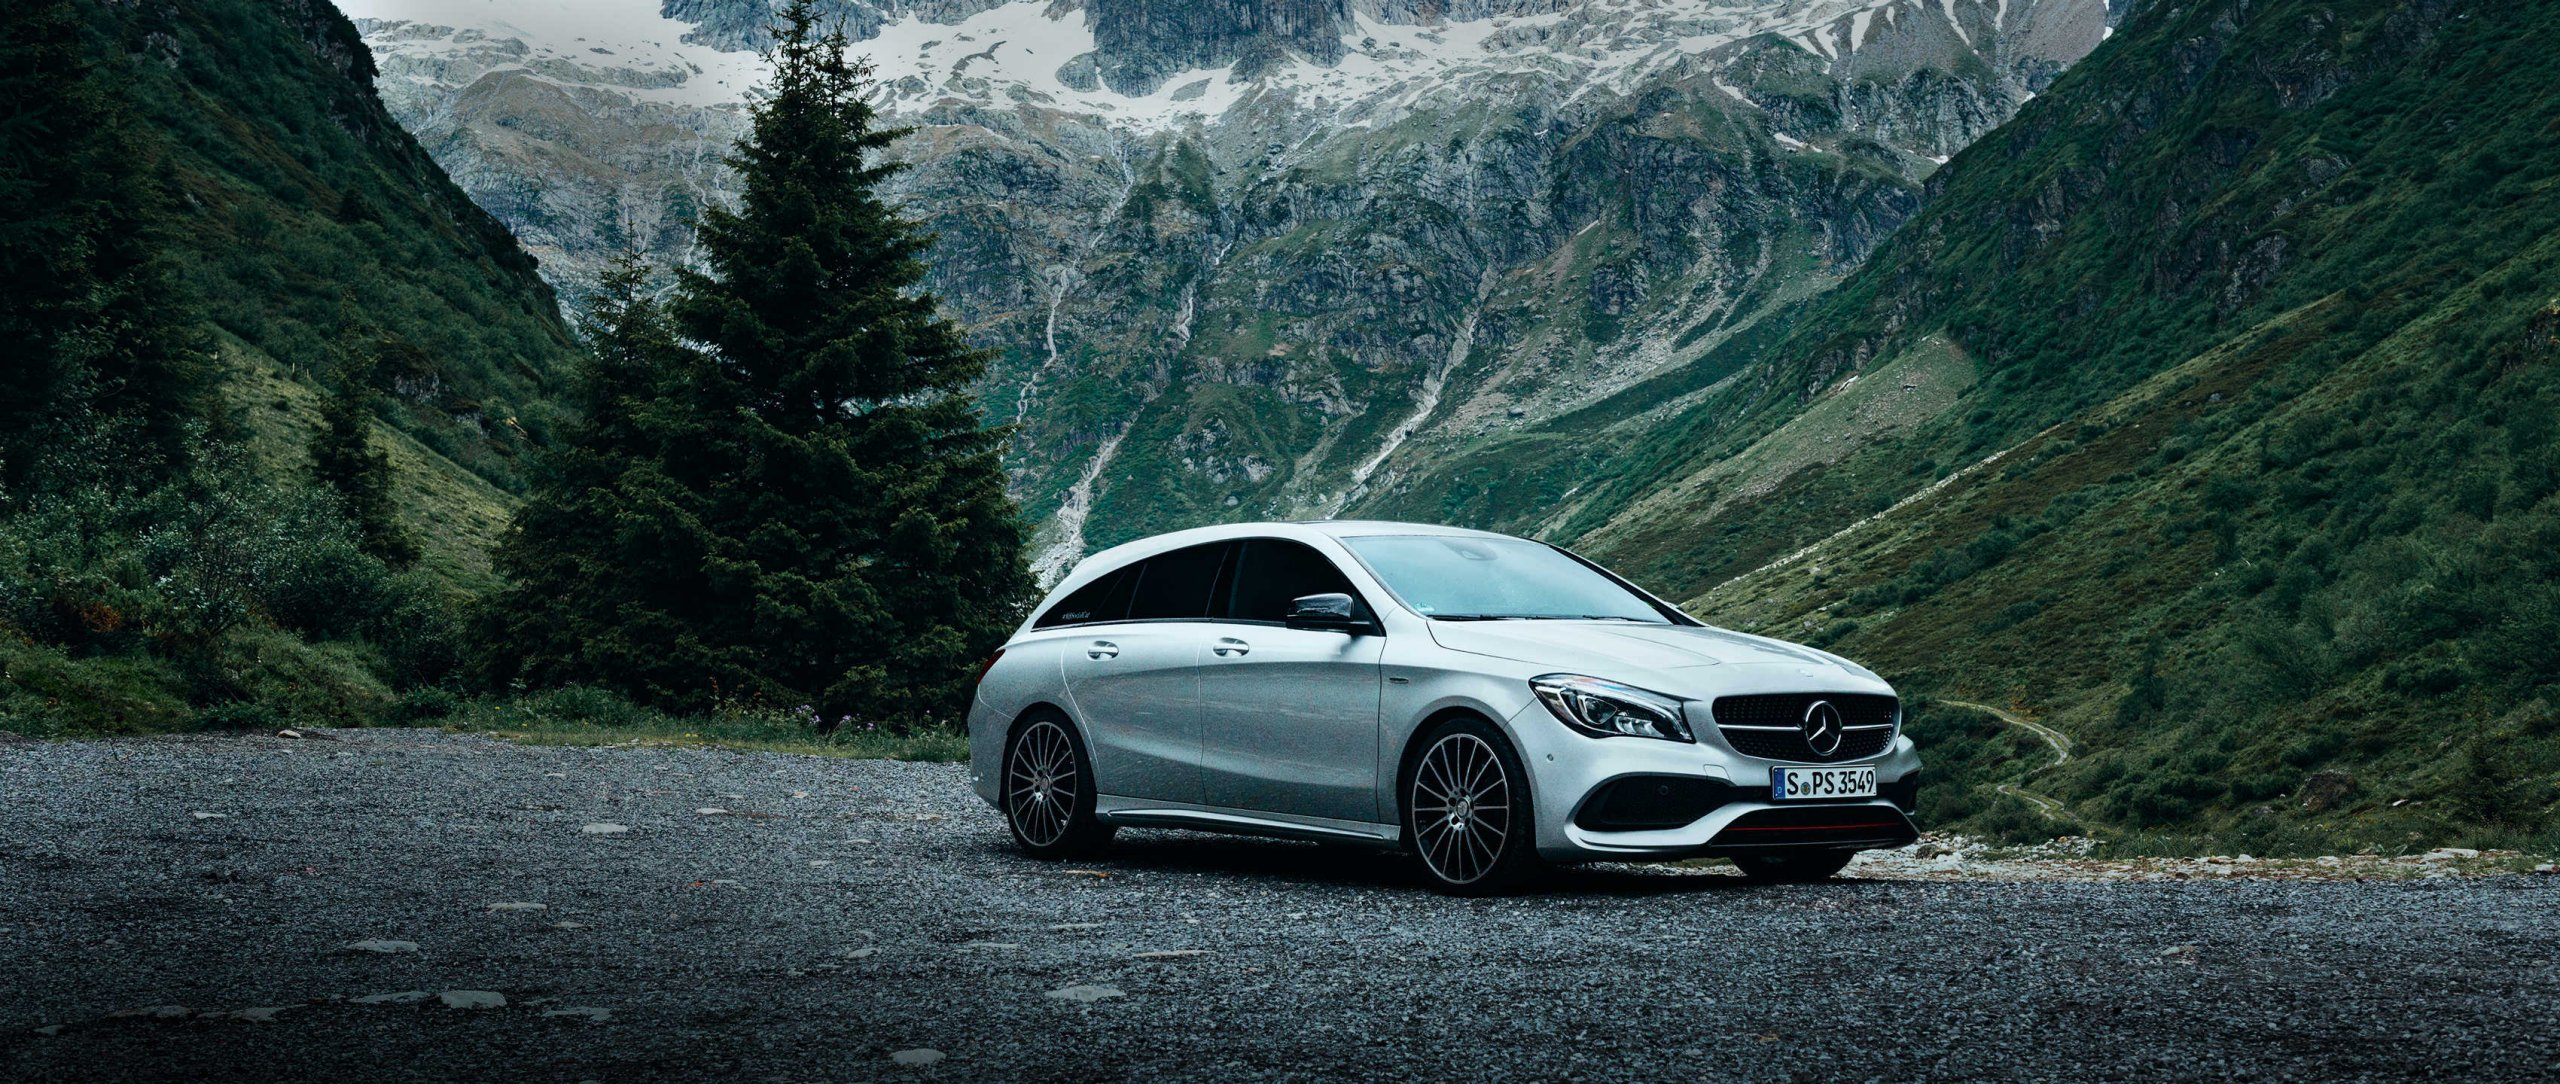 Mercedes-Benz CLA Shooting Brake (X 117): Full view in front of mountain scenery.